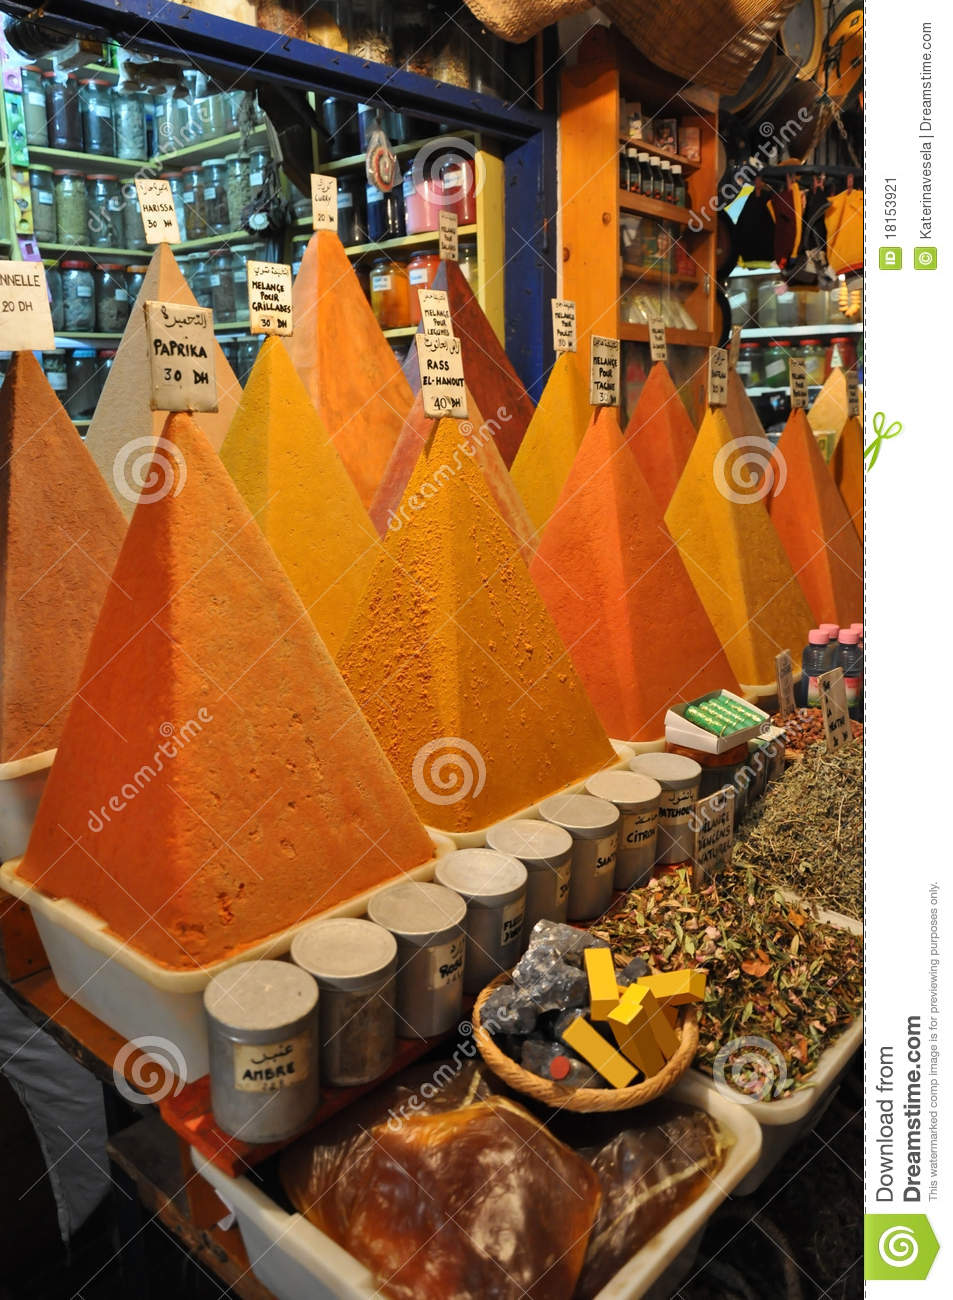 How to Start a Spices Business